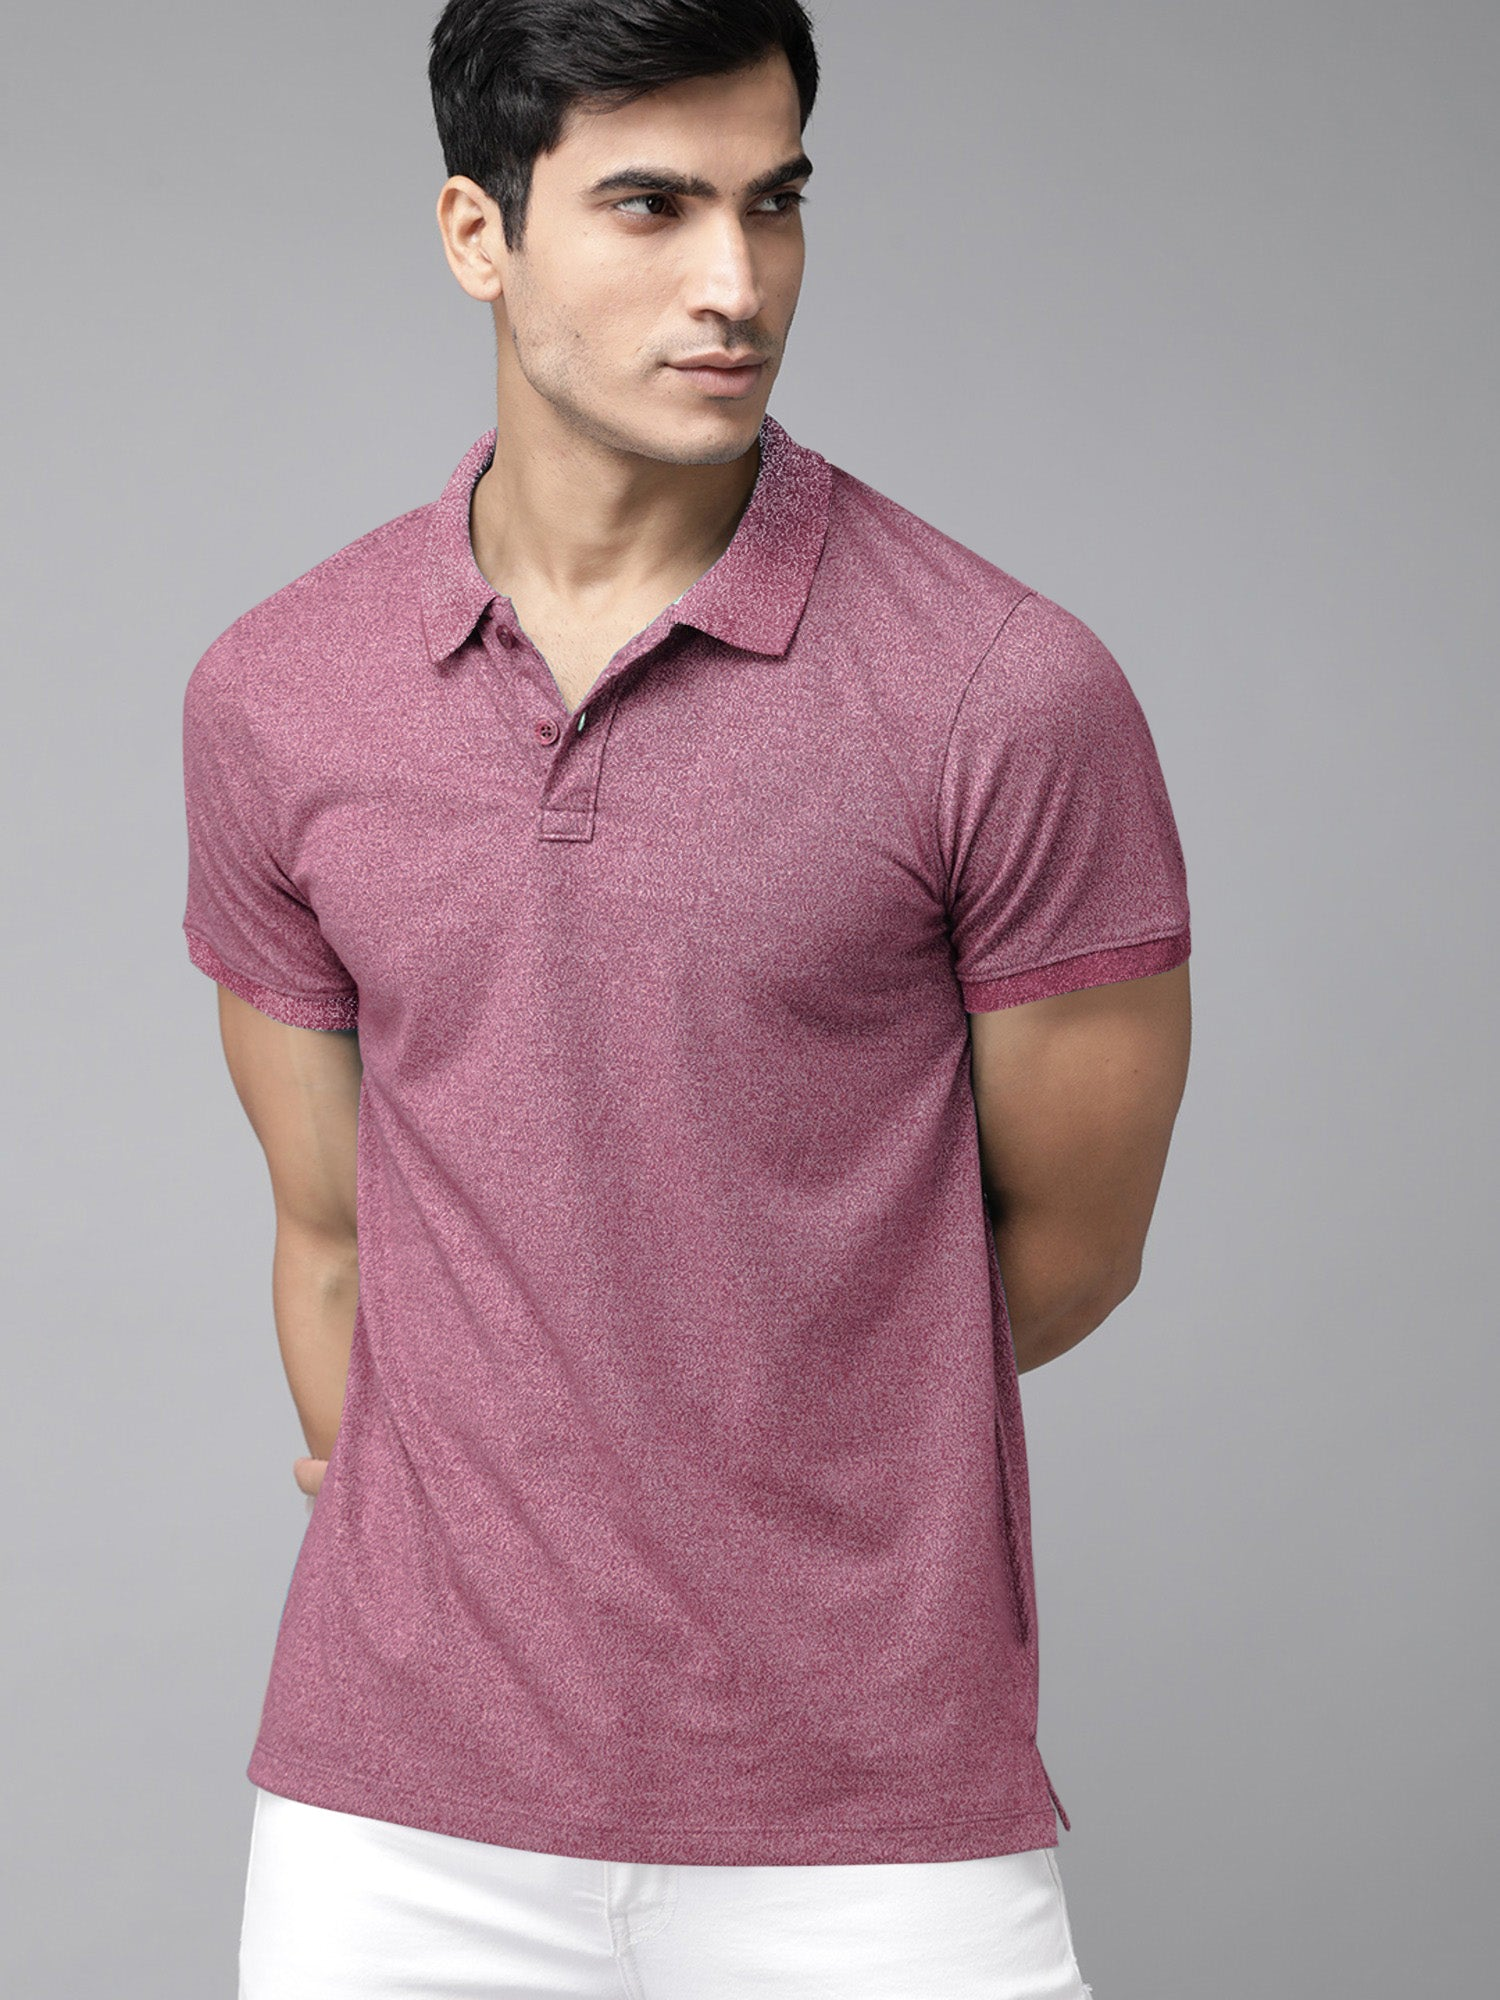 St Jhons's Bay Short Sleeve P.Q Polo Shirt For Men-Maroon Melange-BE14612